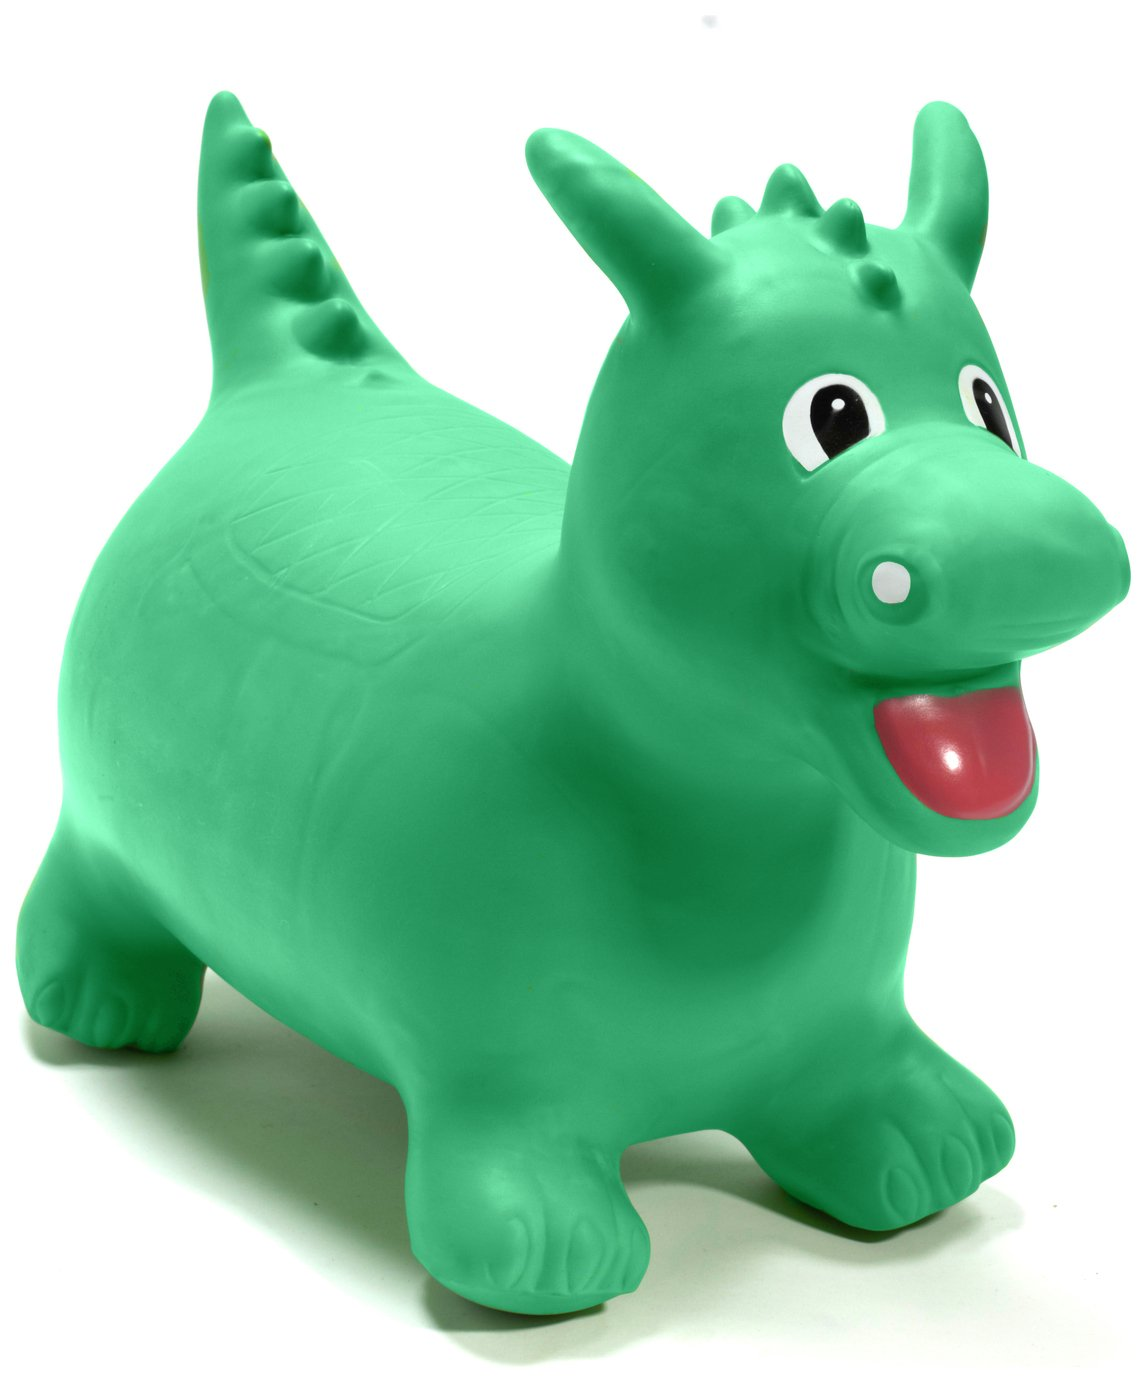 Image of HappyHopperz Inflatable Bouncer Dino - Green.